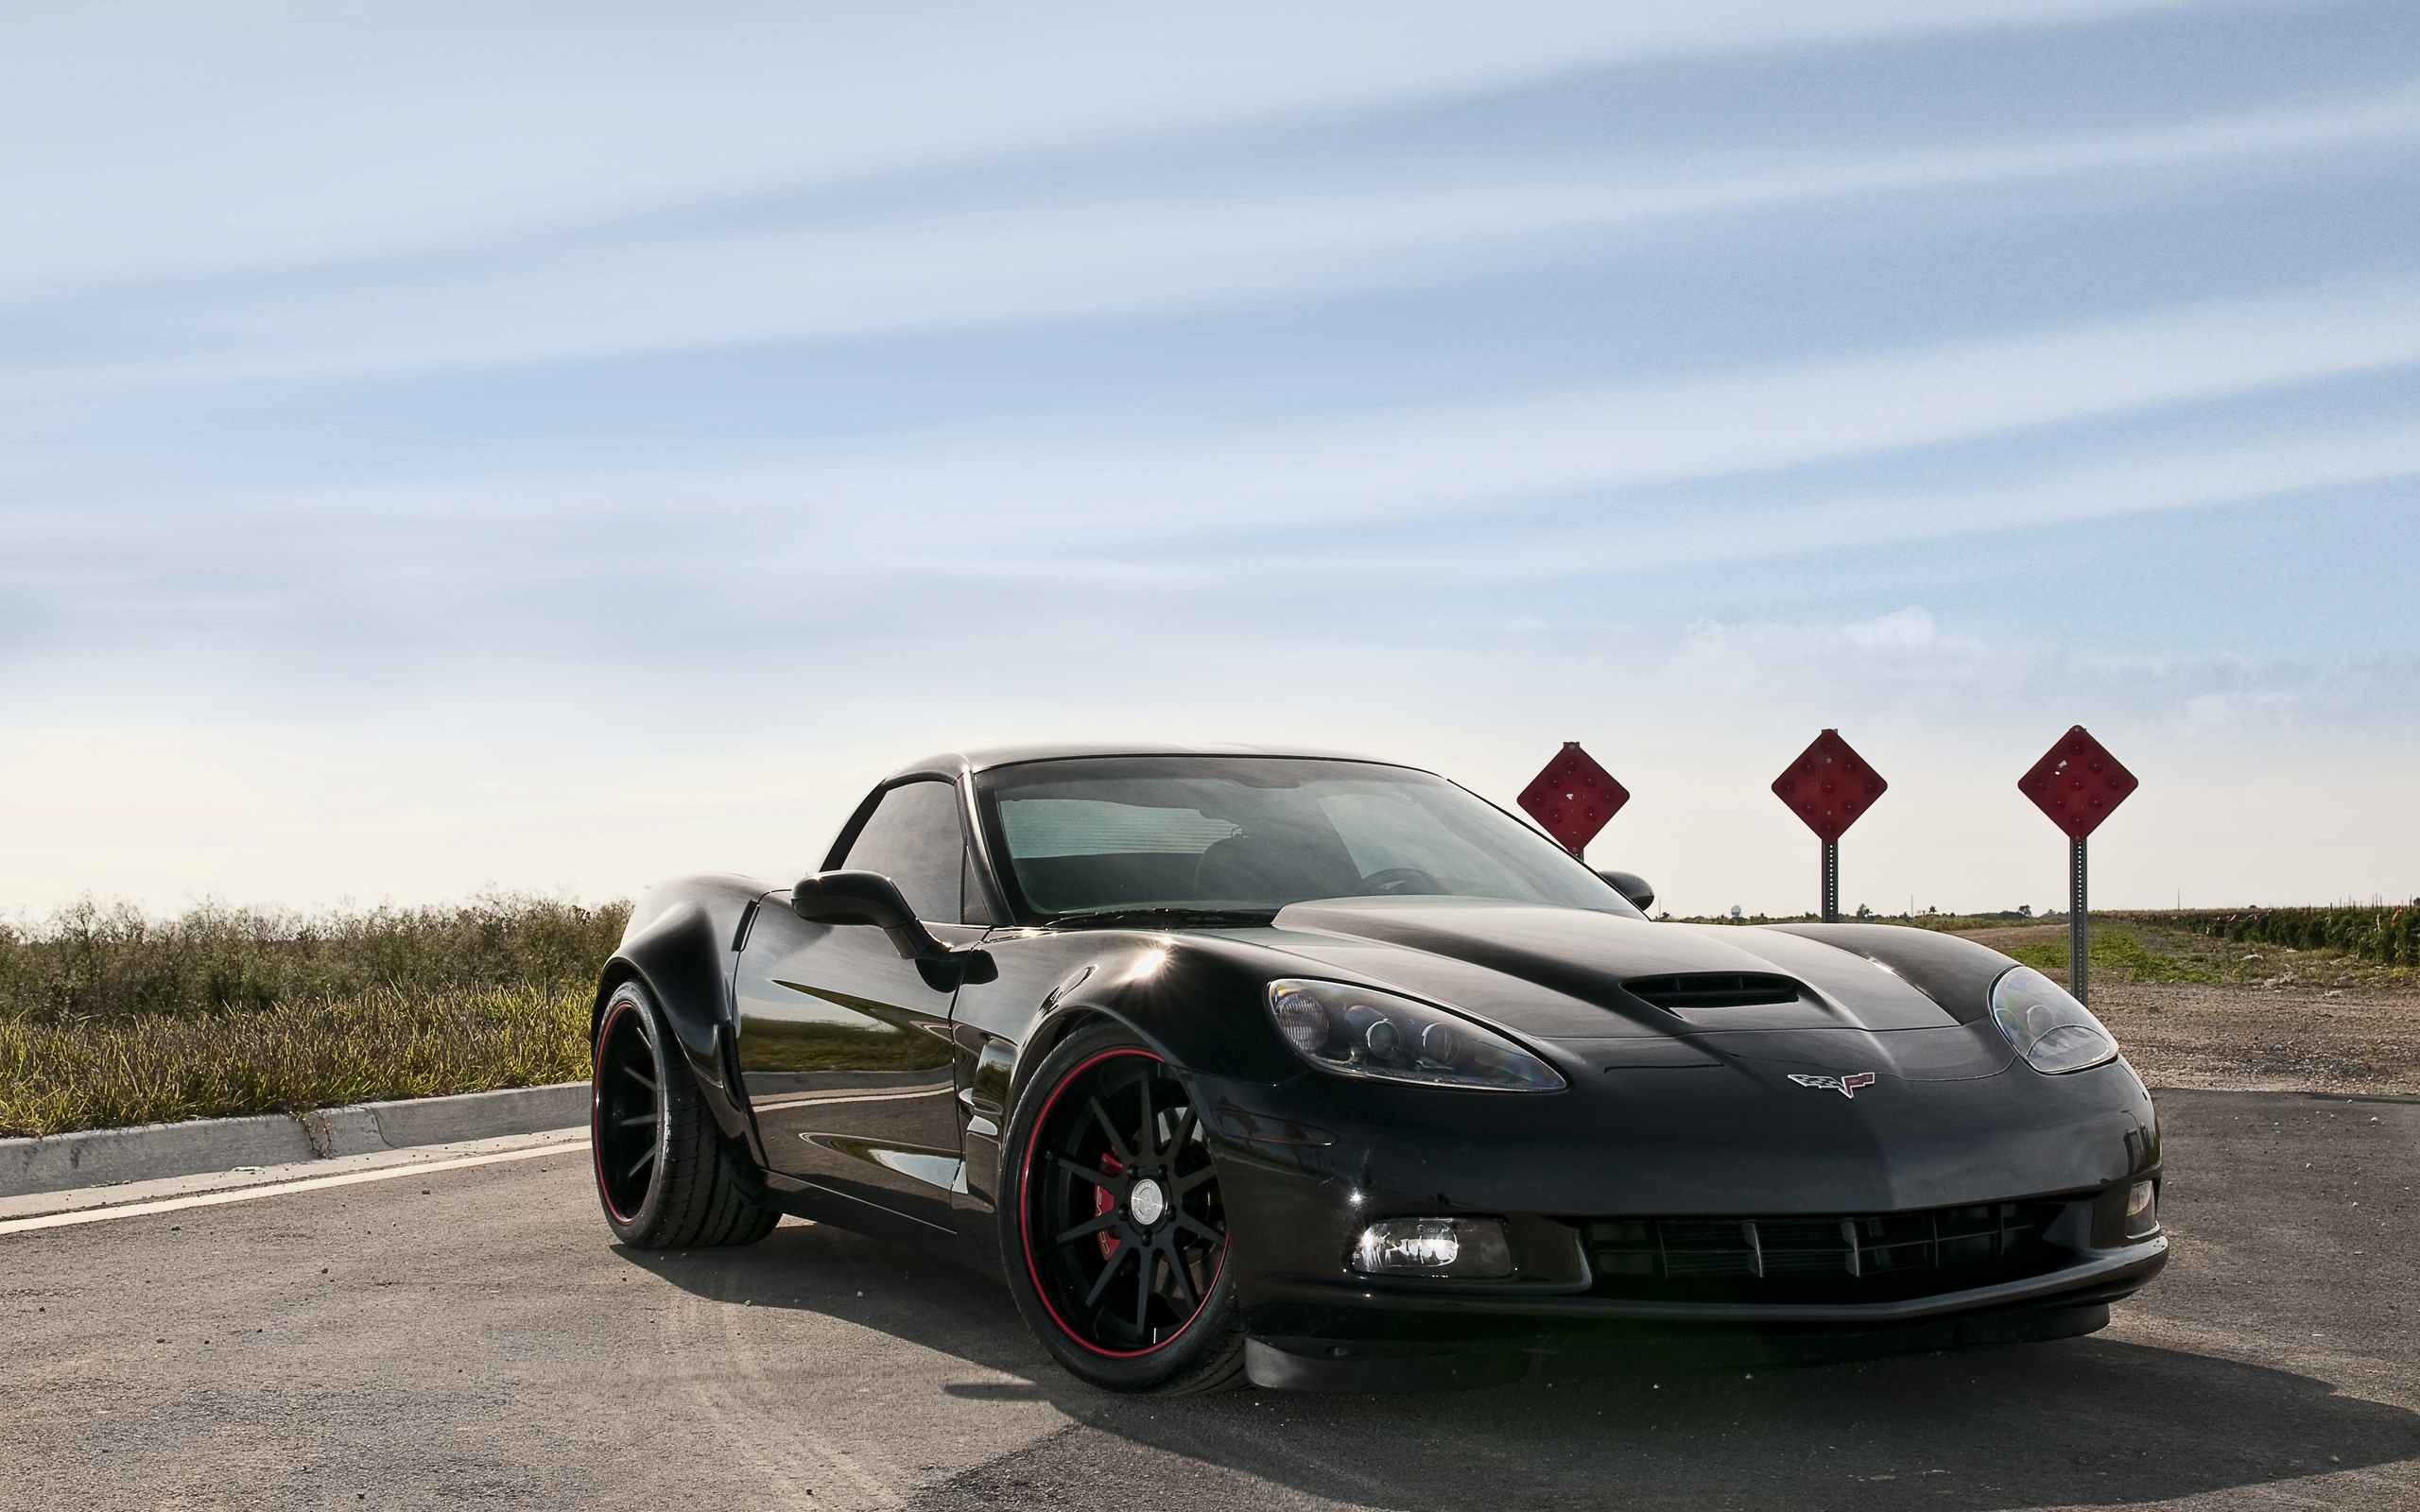 Corvette wallpaper 2560x1600 75839